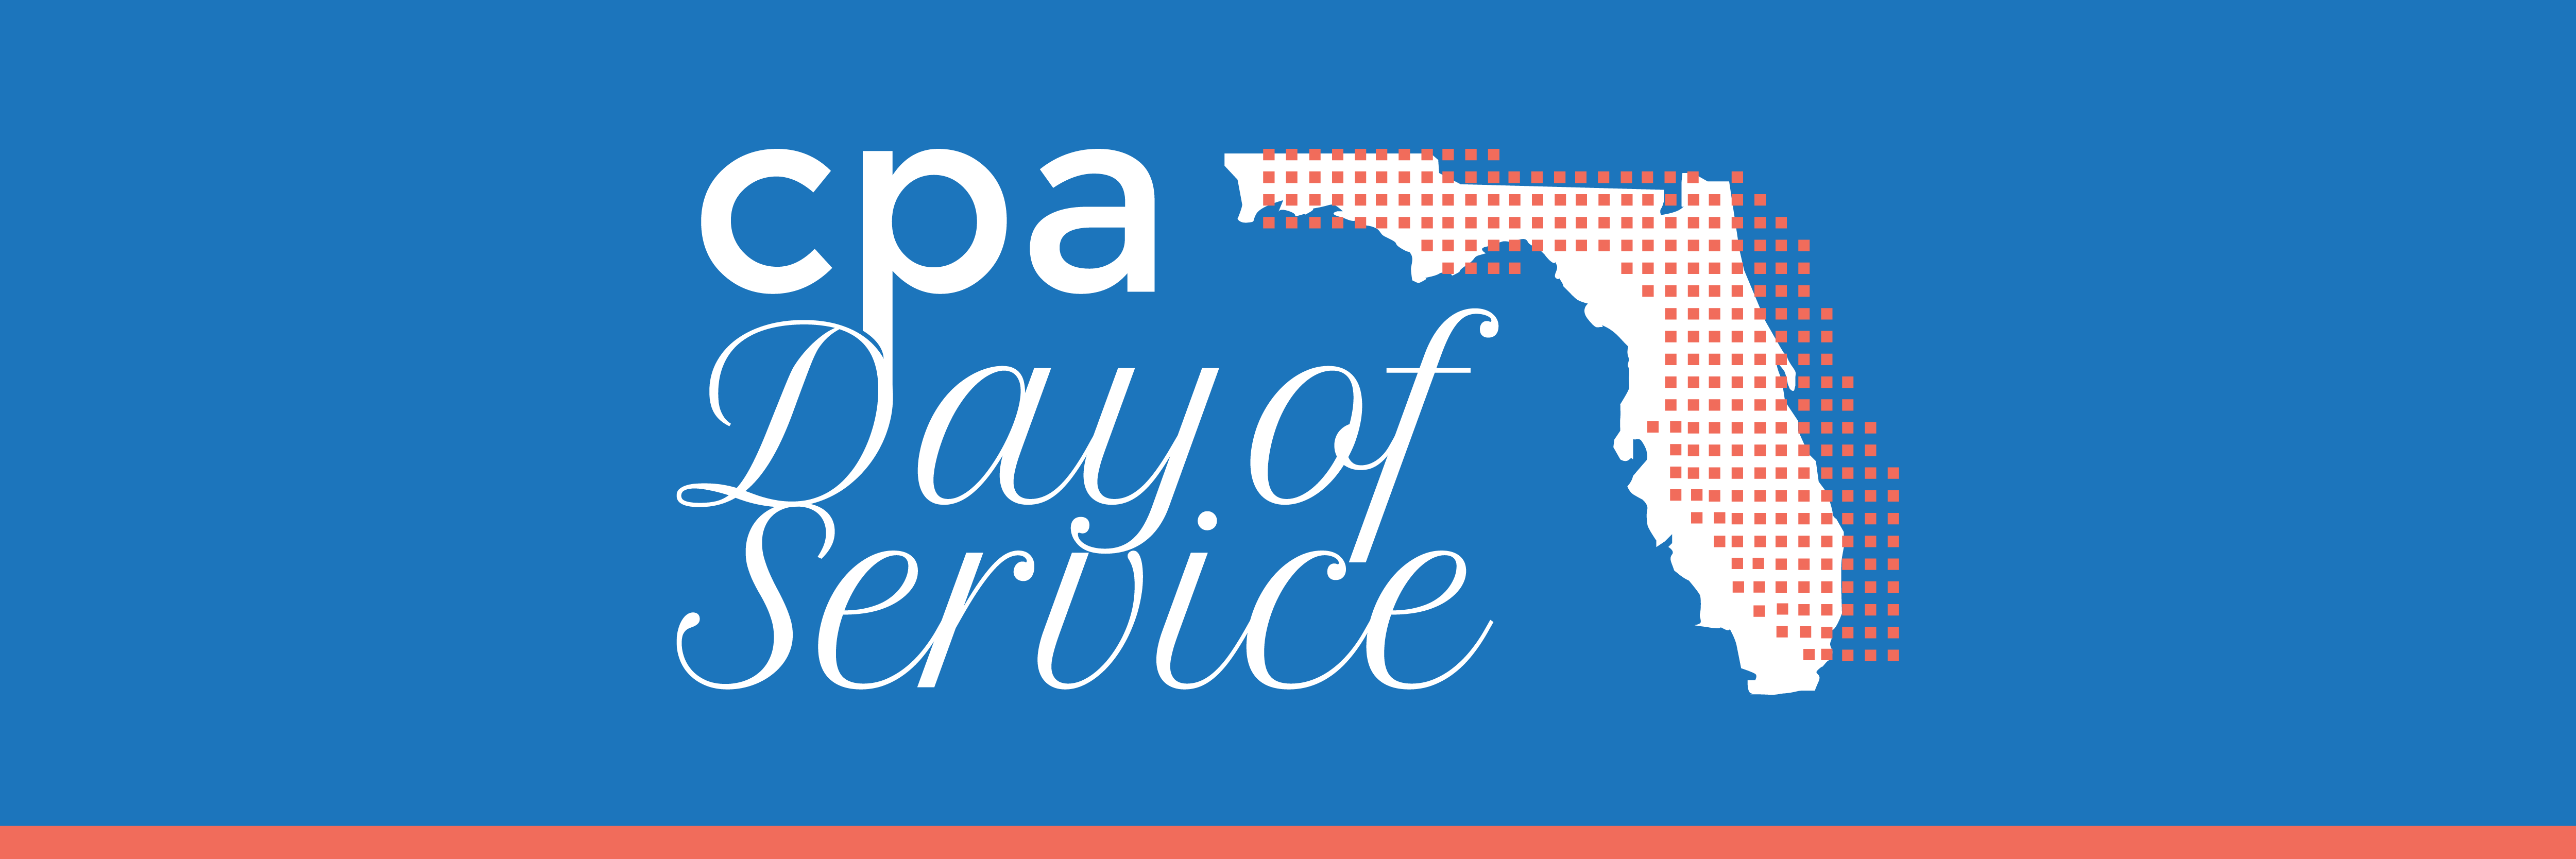 CPA Day of Service